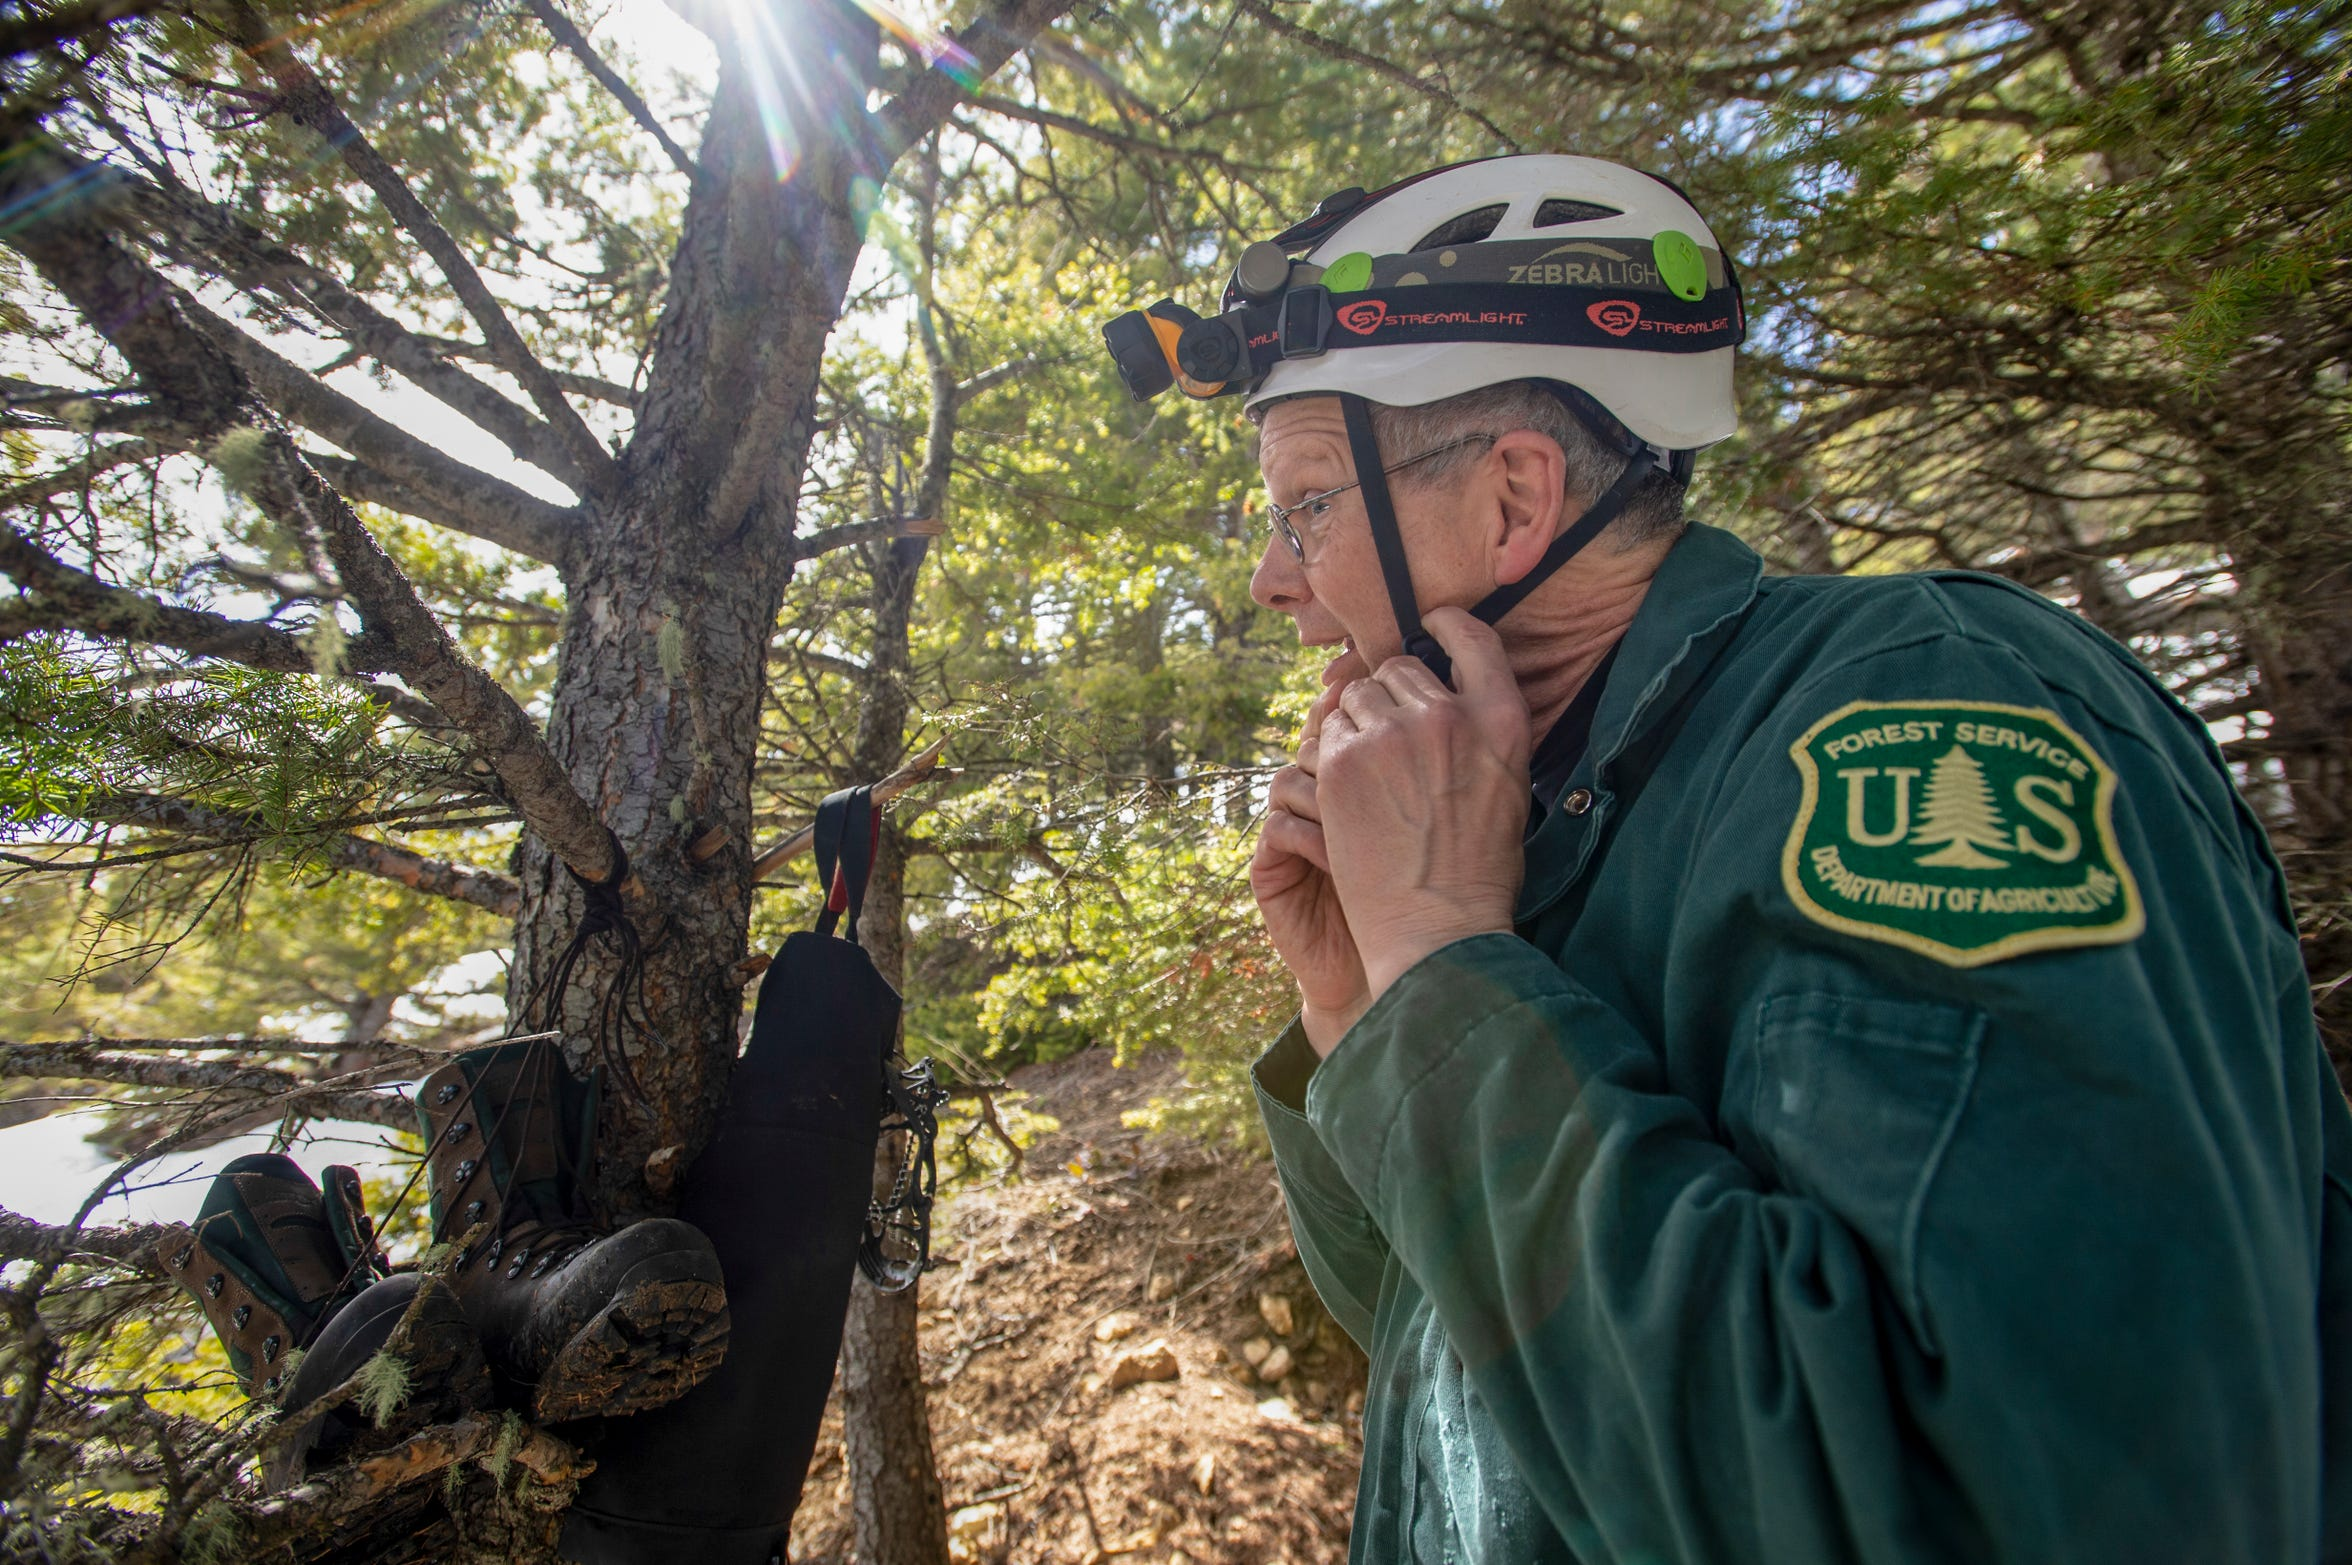 Dave Bobbitt, geologist with the U.S. Forest Service, prepares to enter Lick Creek Cave in the Helena-Lewis and Clark National Forest to study the bat population.